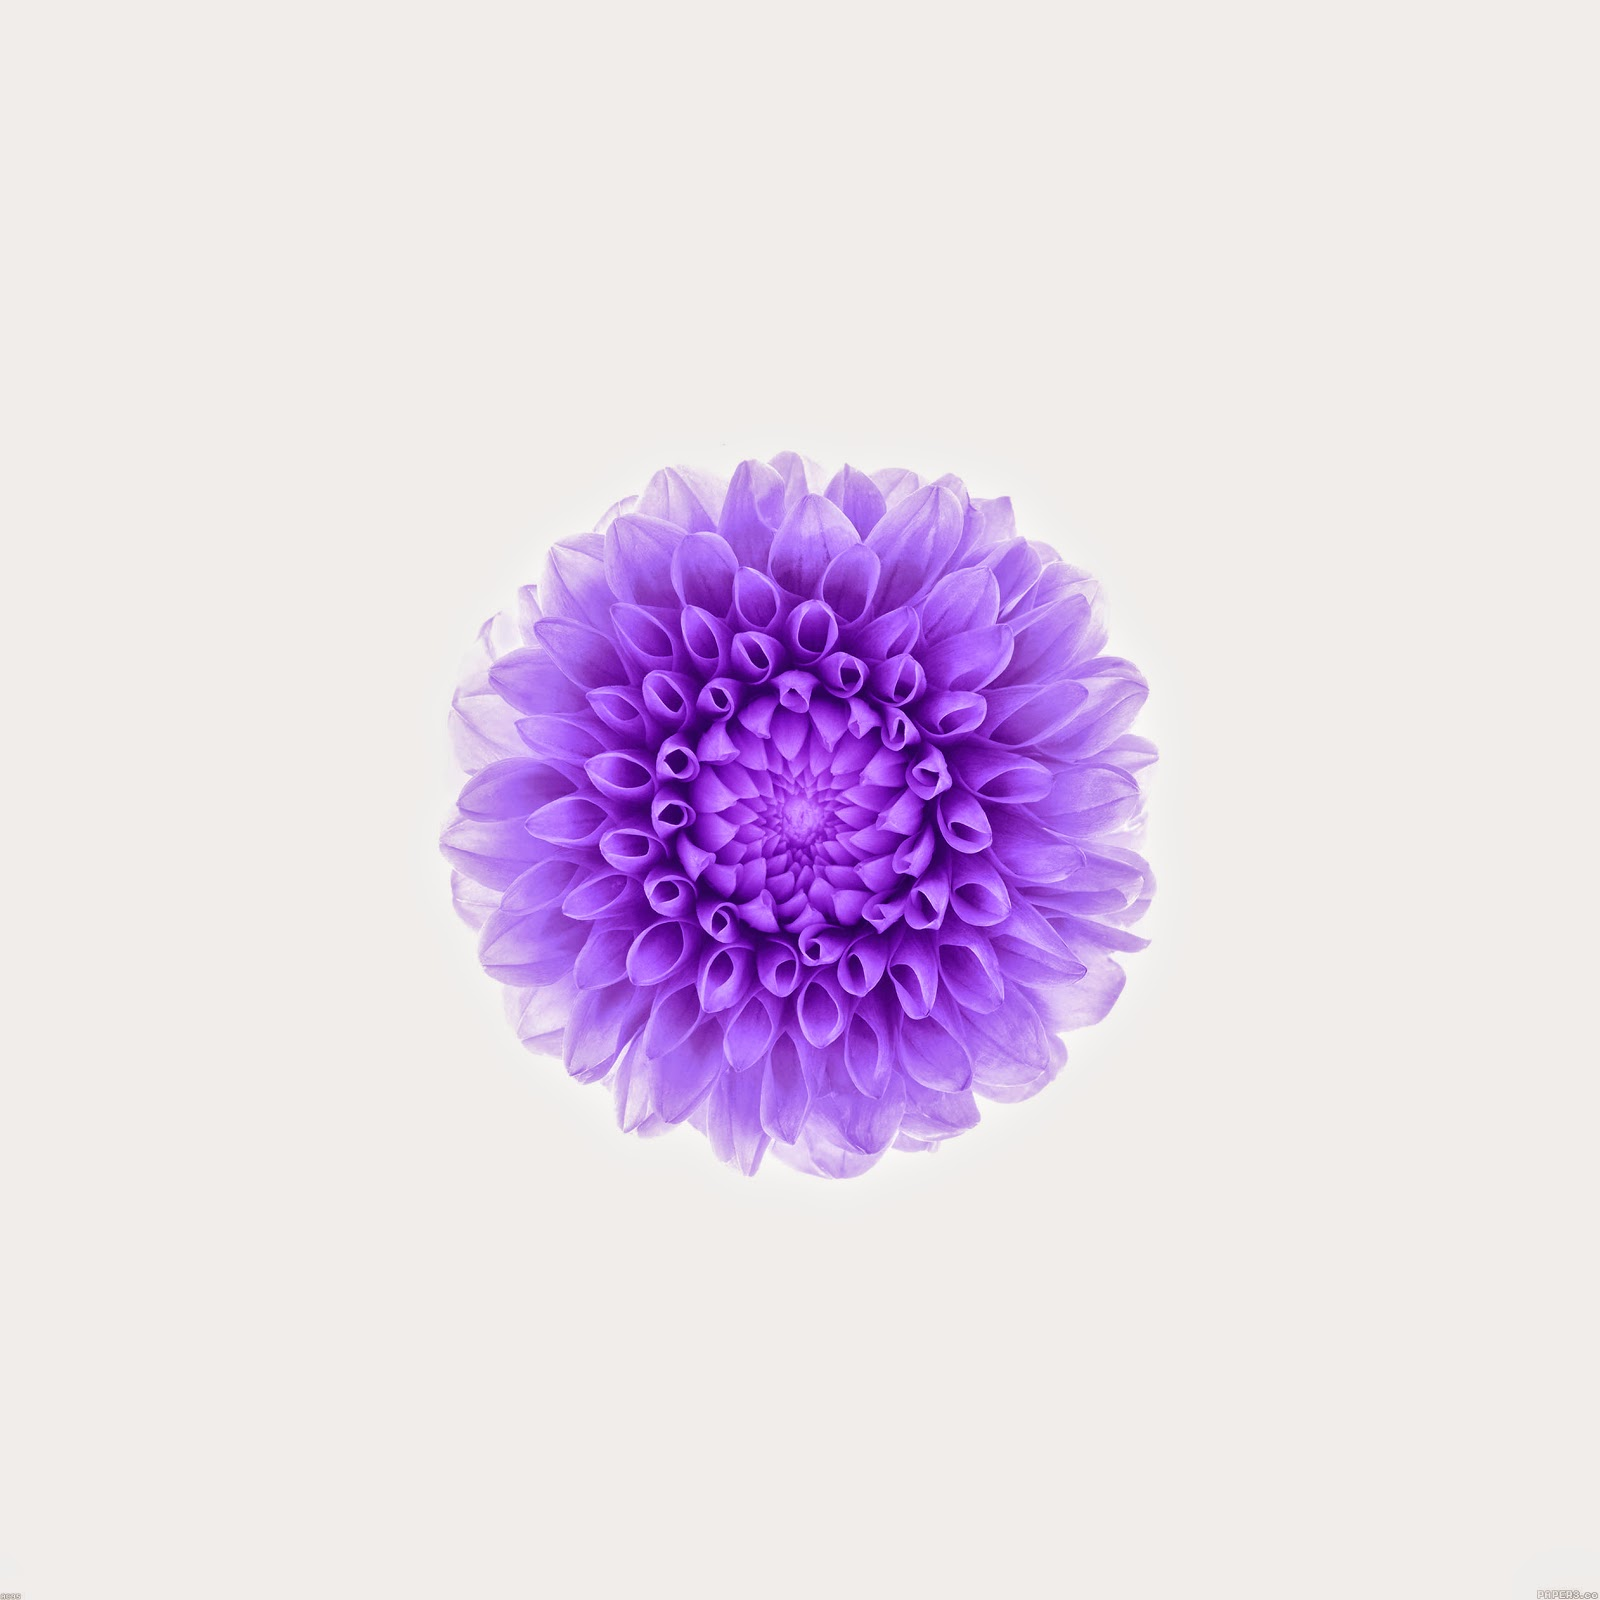 IOS 8 Flower Wallpaper